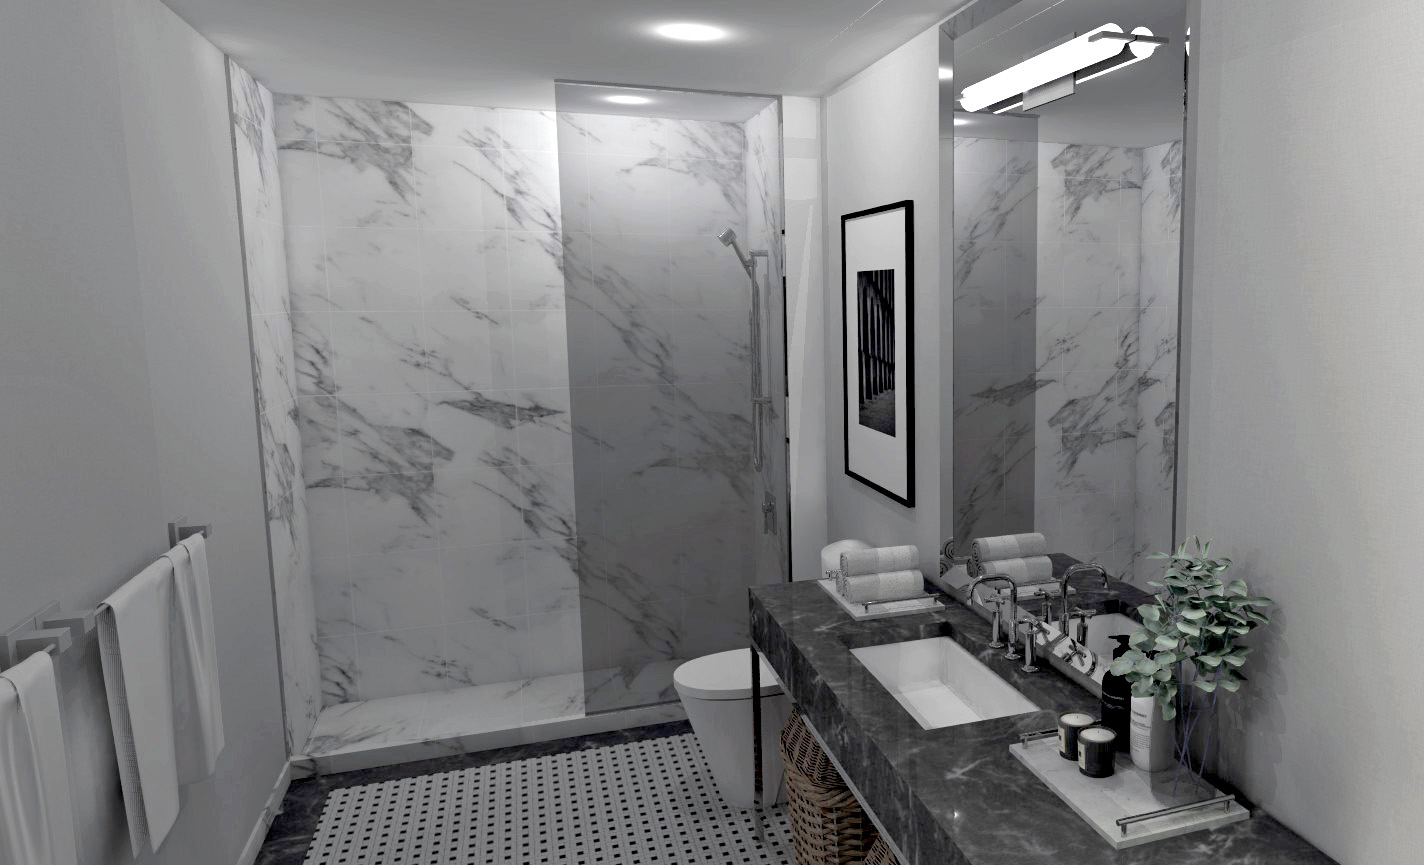 The National Club Hotel Bathroom with white marble walls, grey marble countertop, and black and white tile floor